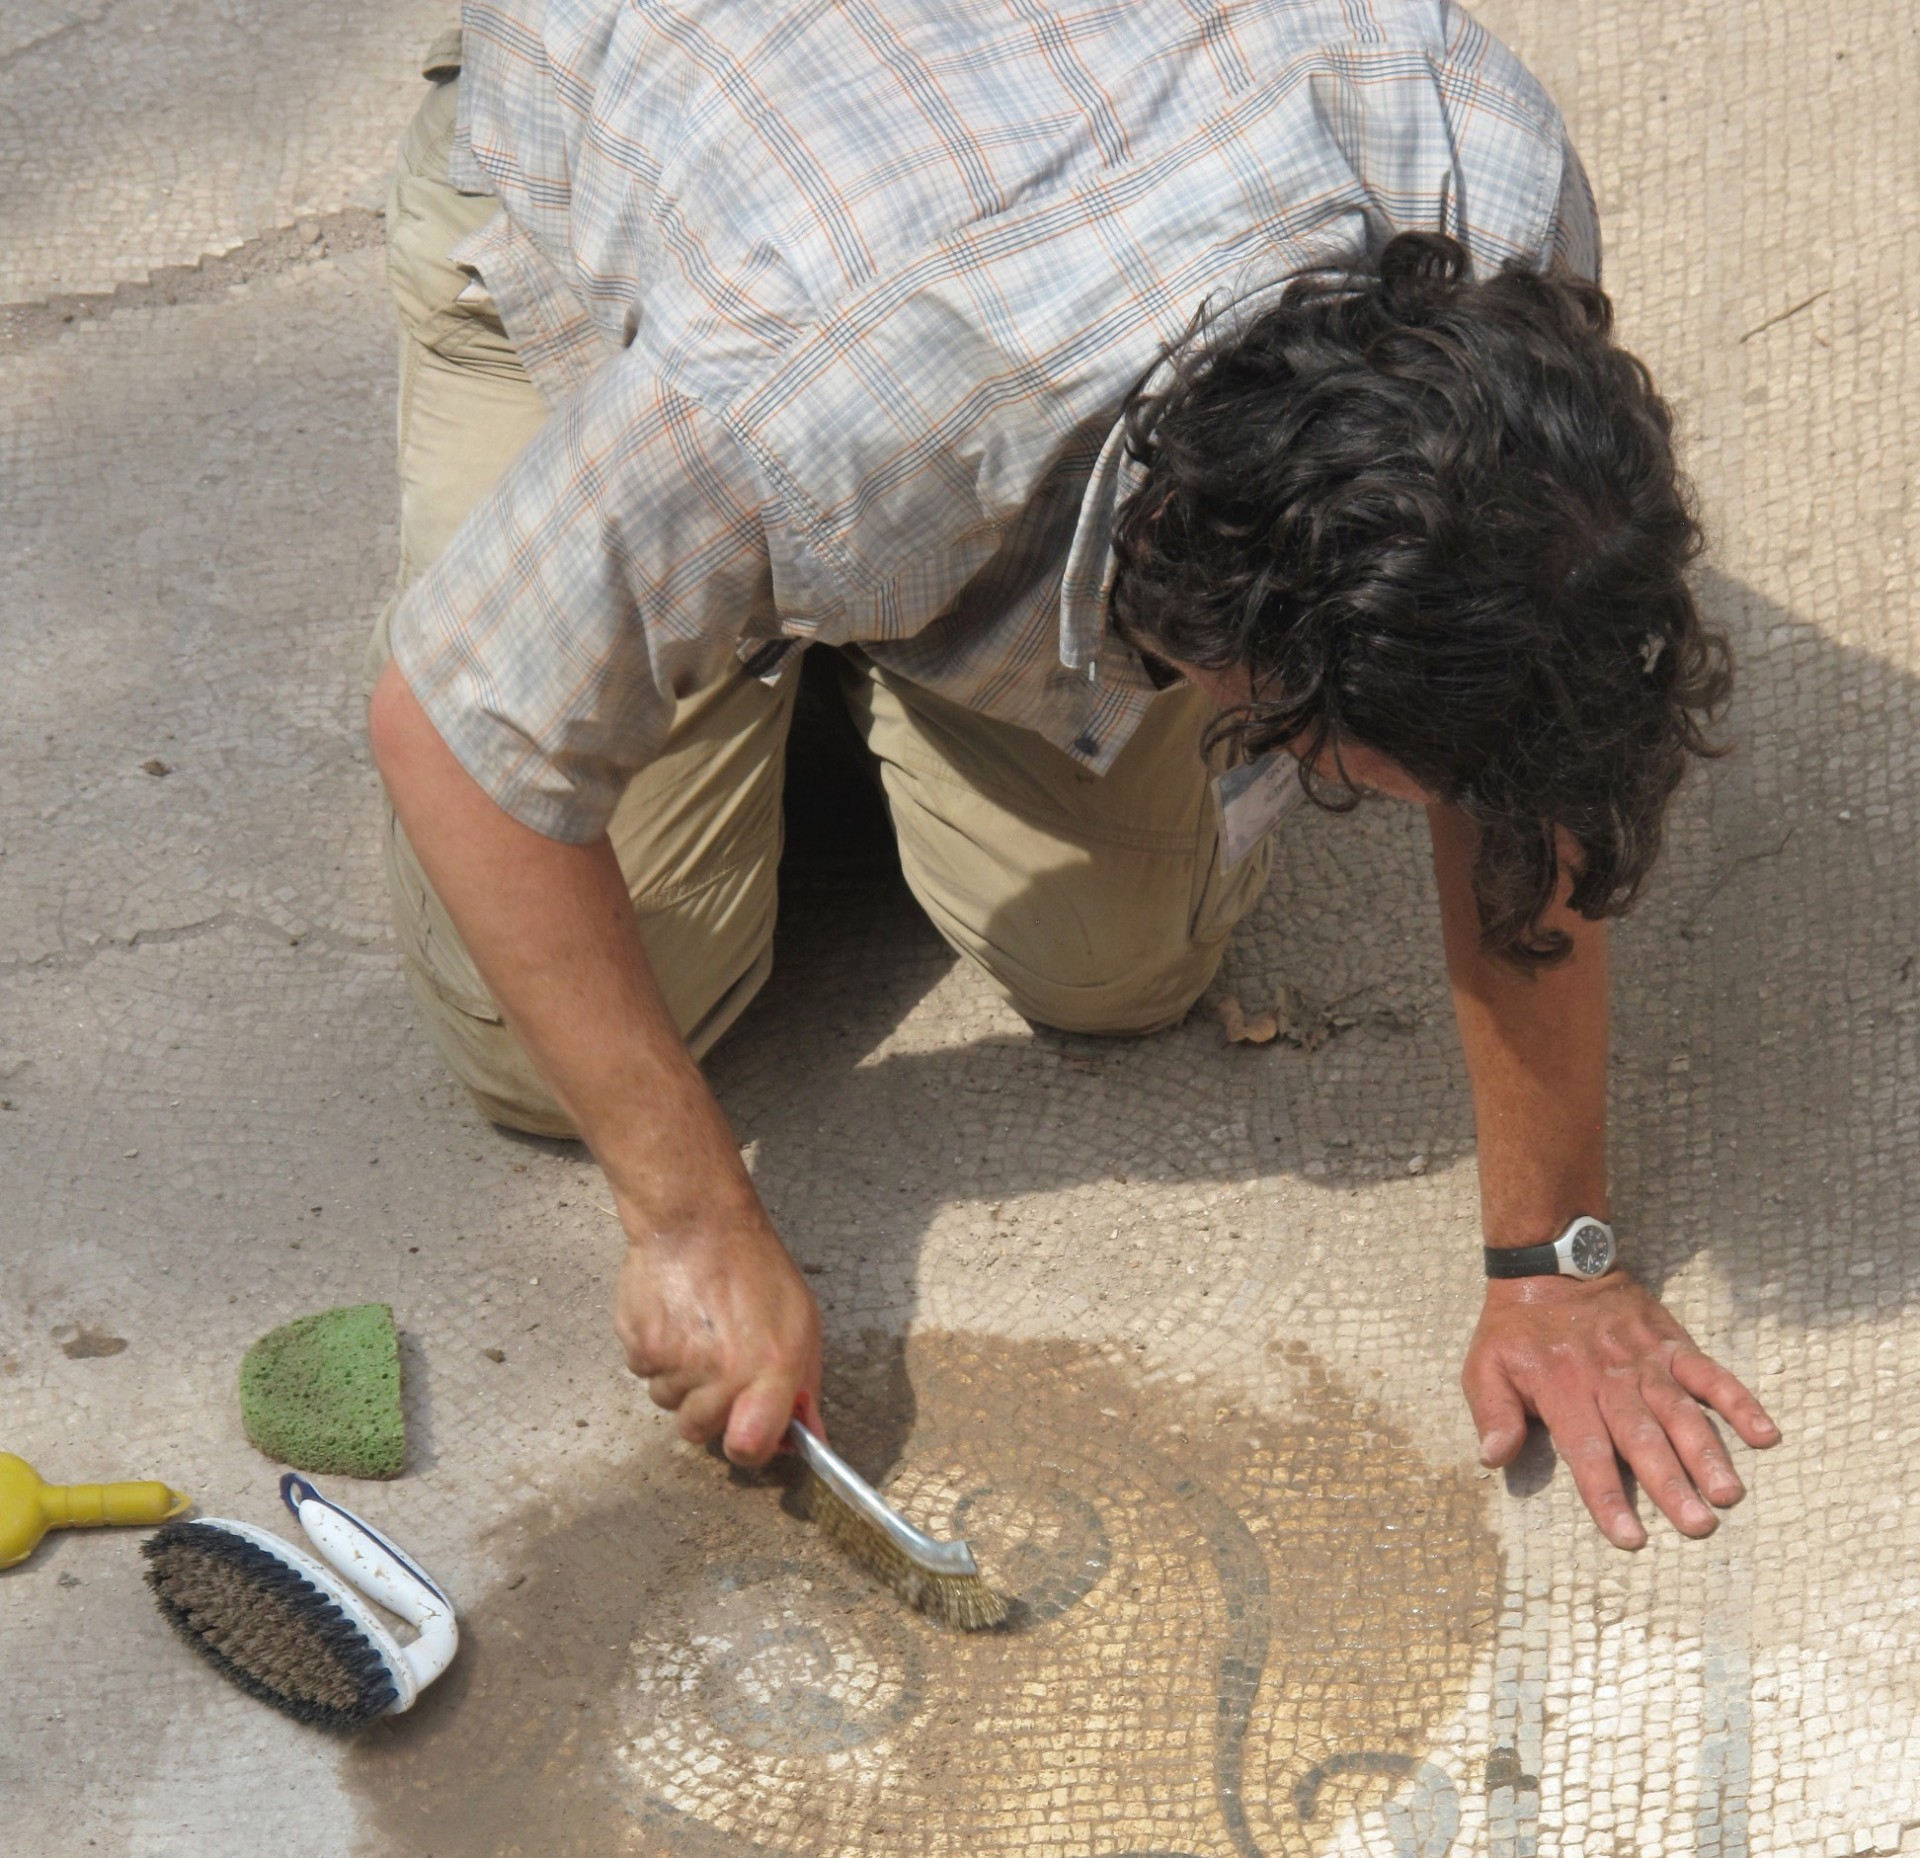 A man washes away dirt from a floor mosaic